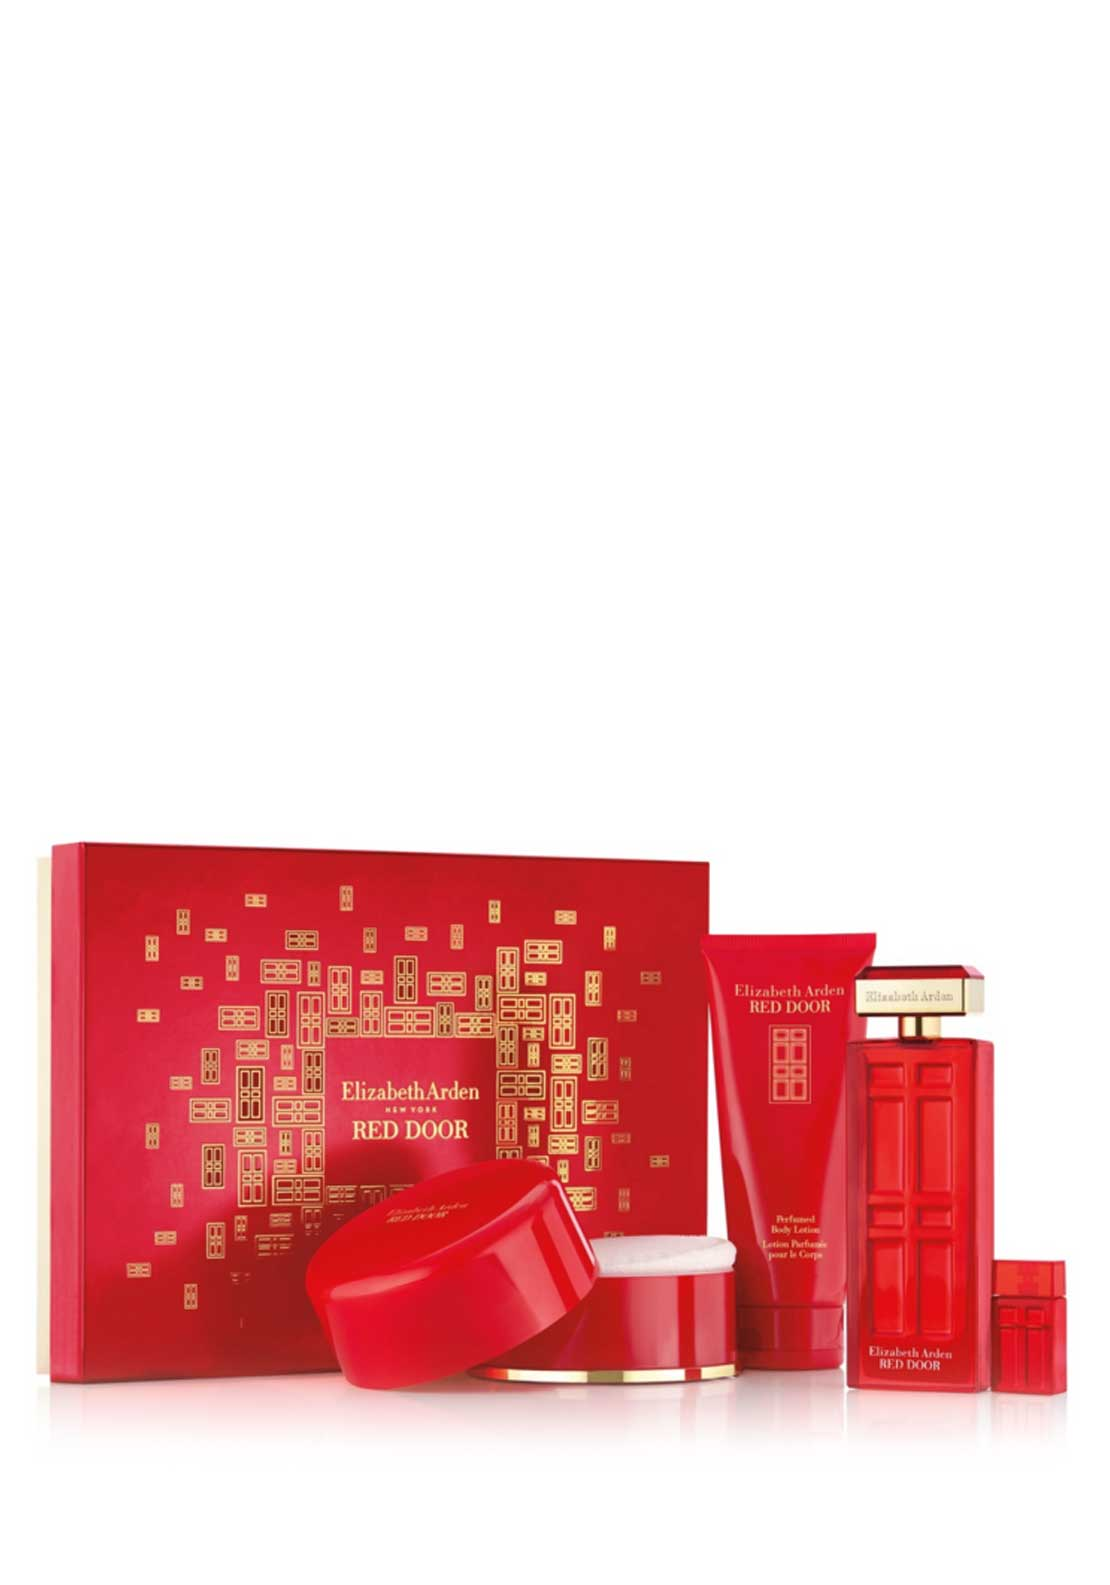 Elizabeth Arden Red Door Eau de Toilette Gift Set, 100ml